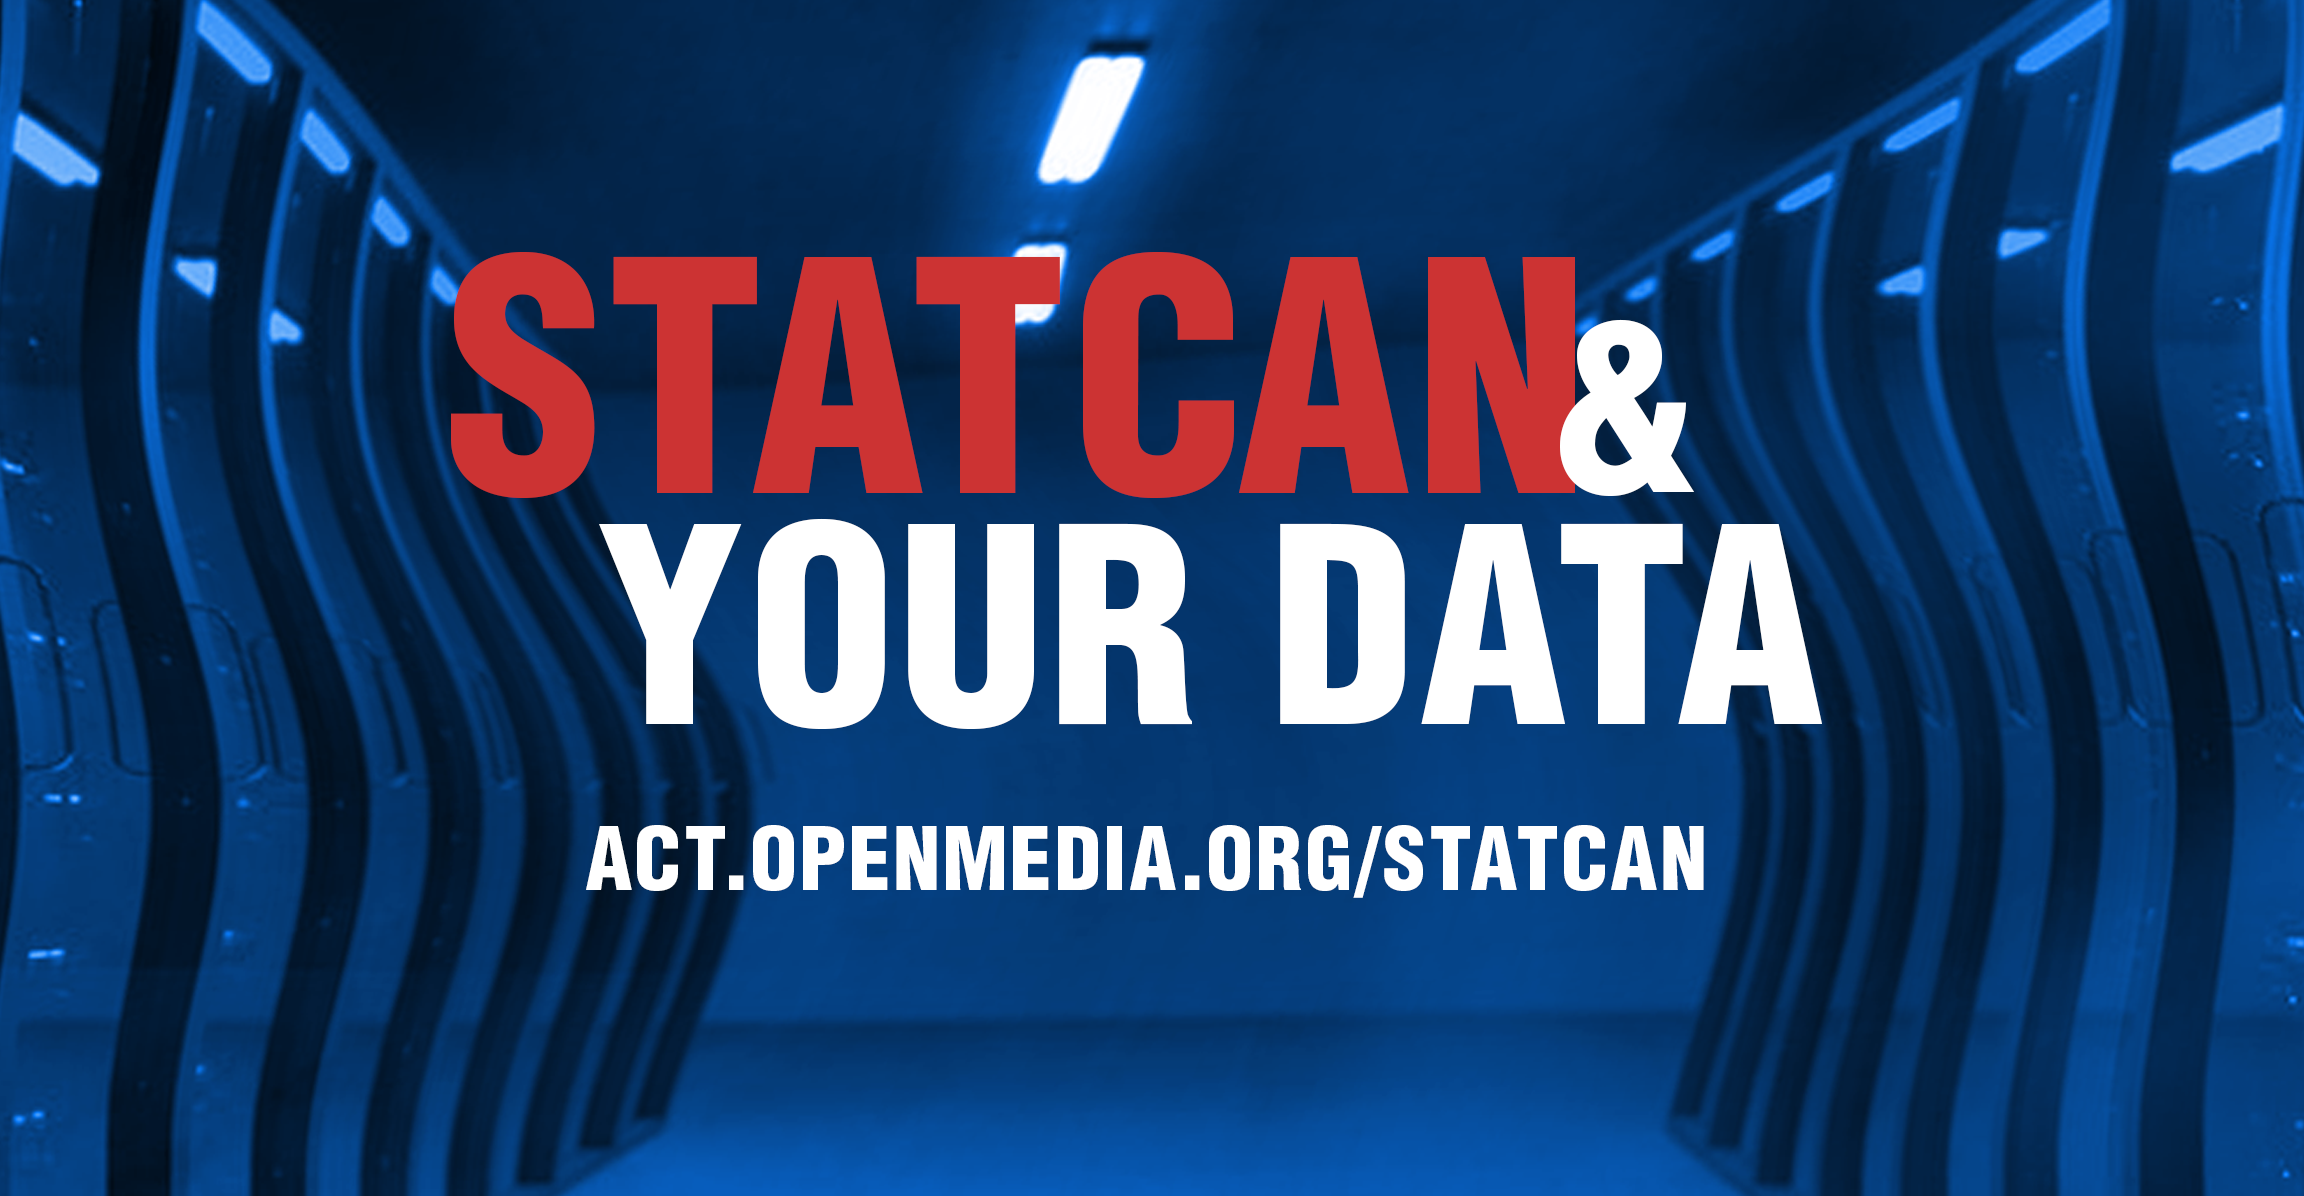 Dark data stacks, that says StatCan overtop